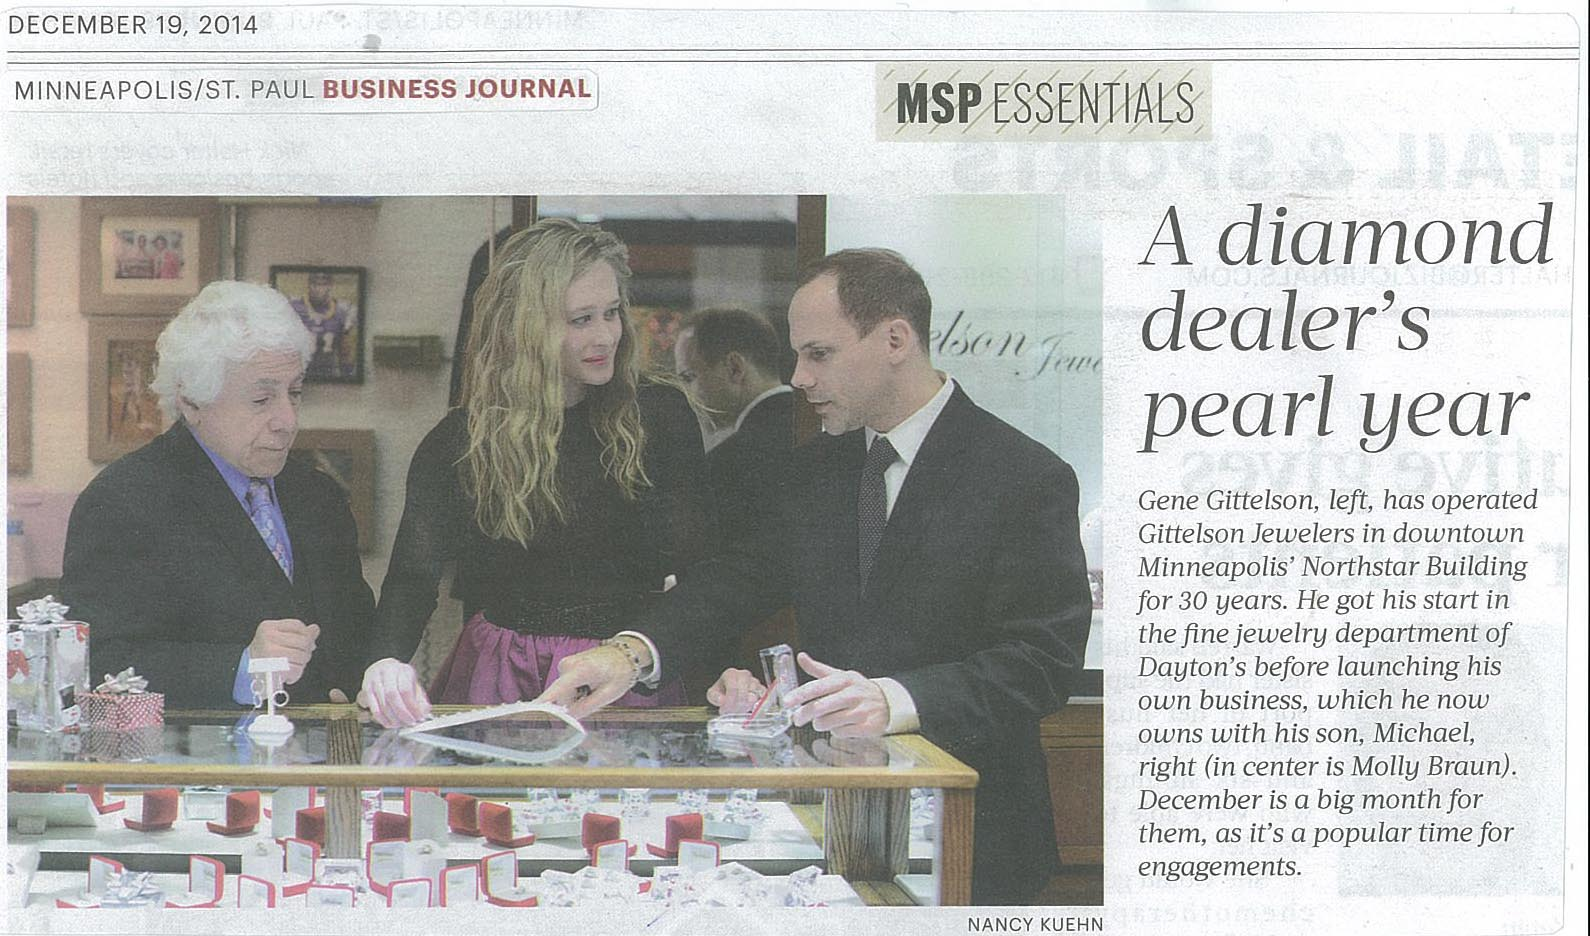 Gittelson Jewelers ( http://gittelsonjewelers.com/ ) - Gene Gittelson, Molly Braun and Michael Gittelson / MINNEAPOLIS/ST. PAUL BUSINESS JOURNAL / DECEMBER 19, 2014 / Photo by NANCY KUEHN